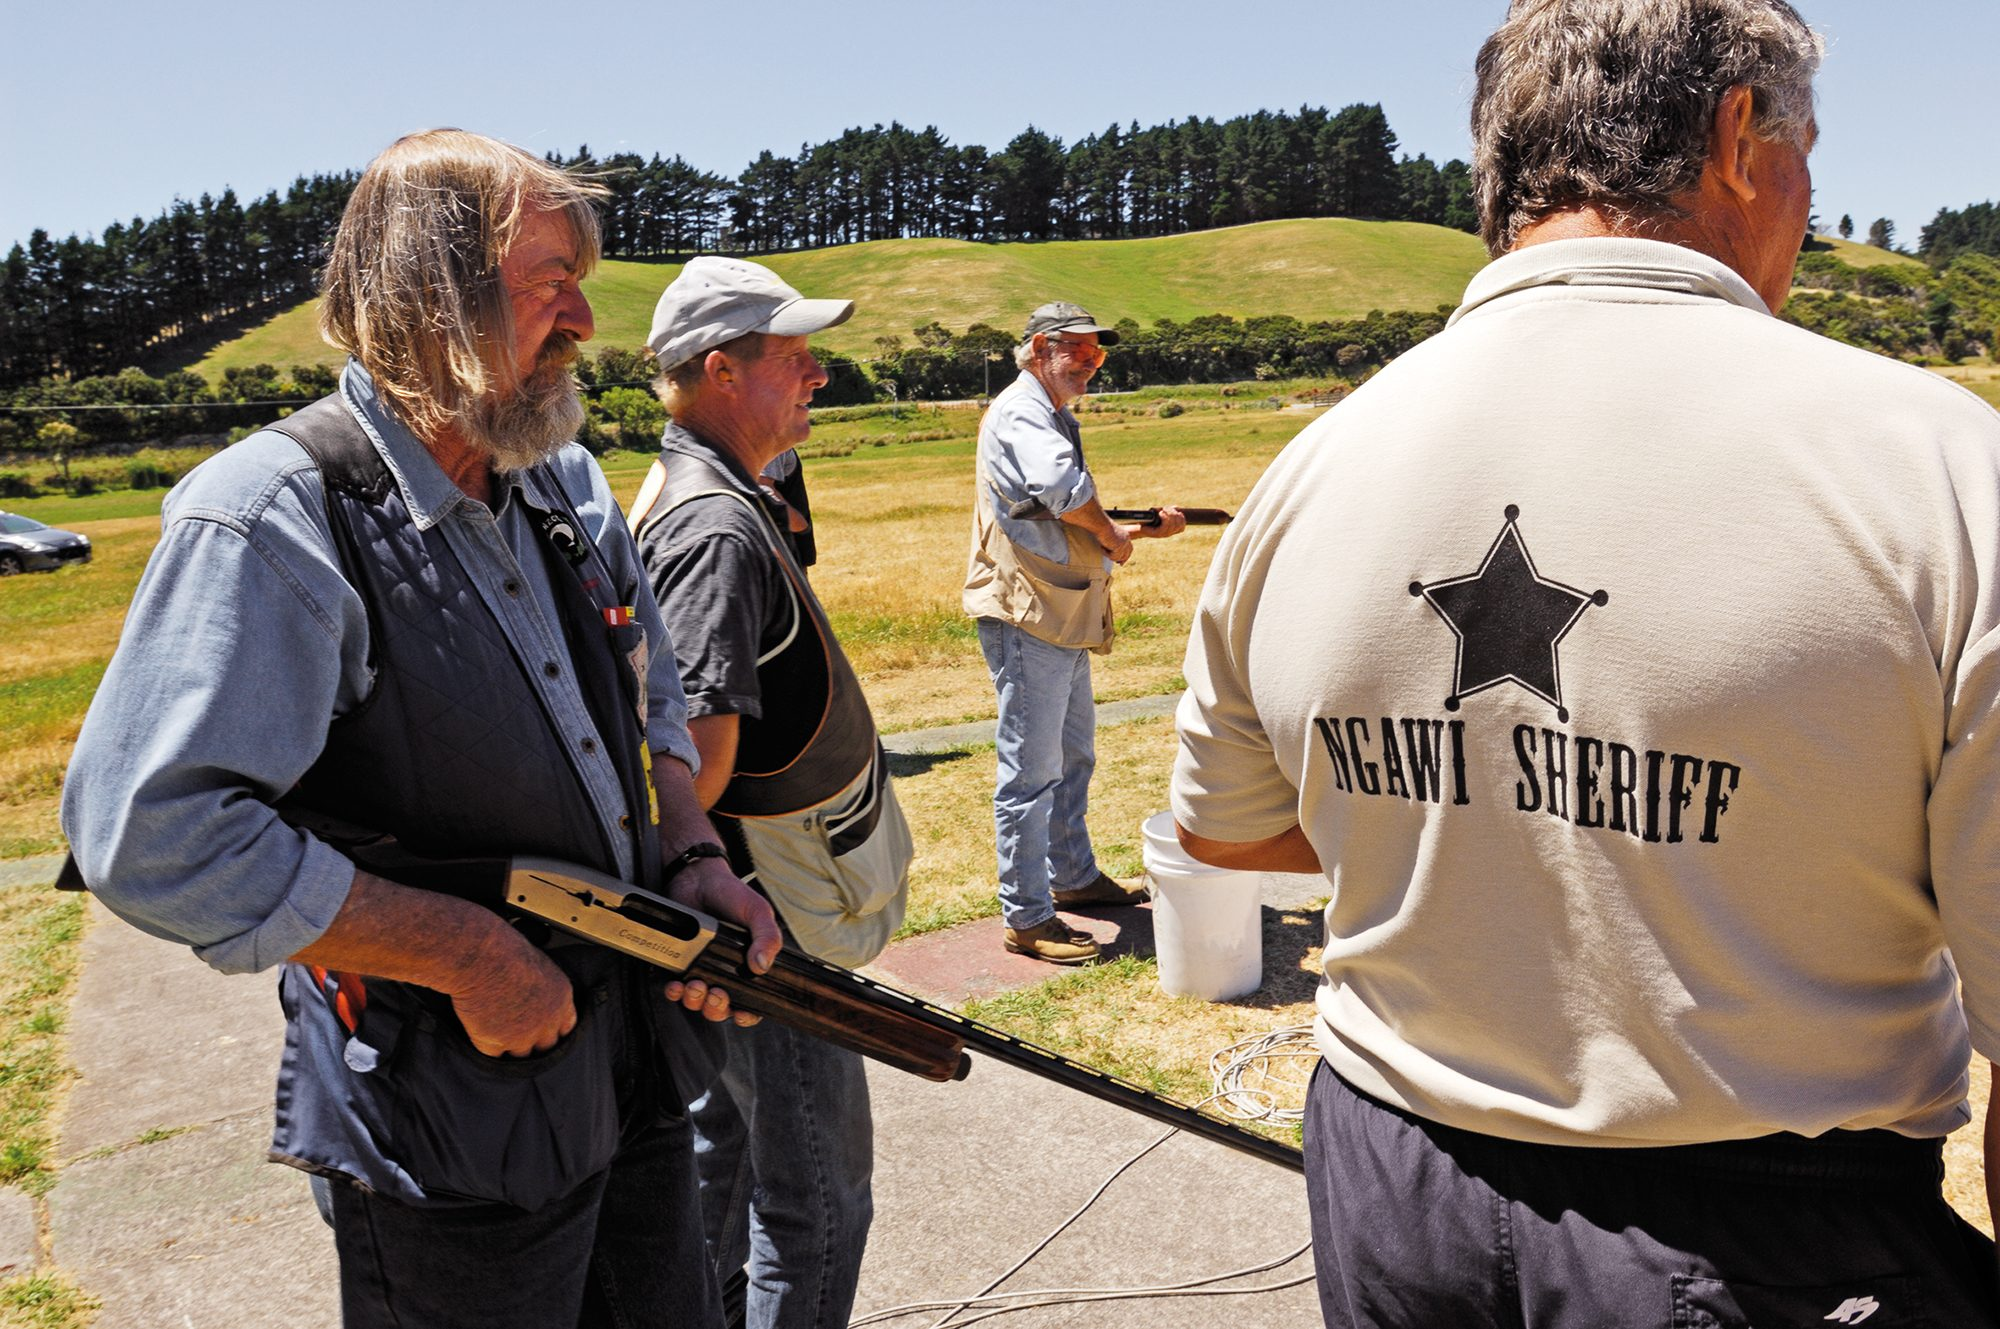 Like Hathawy, Garth Gadsby, president of local gun-club and self-described Ngawi Sheriff is a long-time resident. Having lost his own firearms license in a spate of vigilante action, he can now only supervise the skeet shooting.